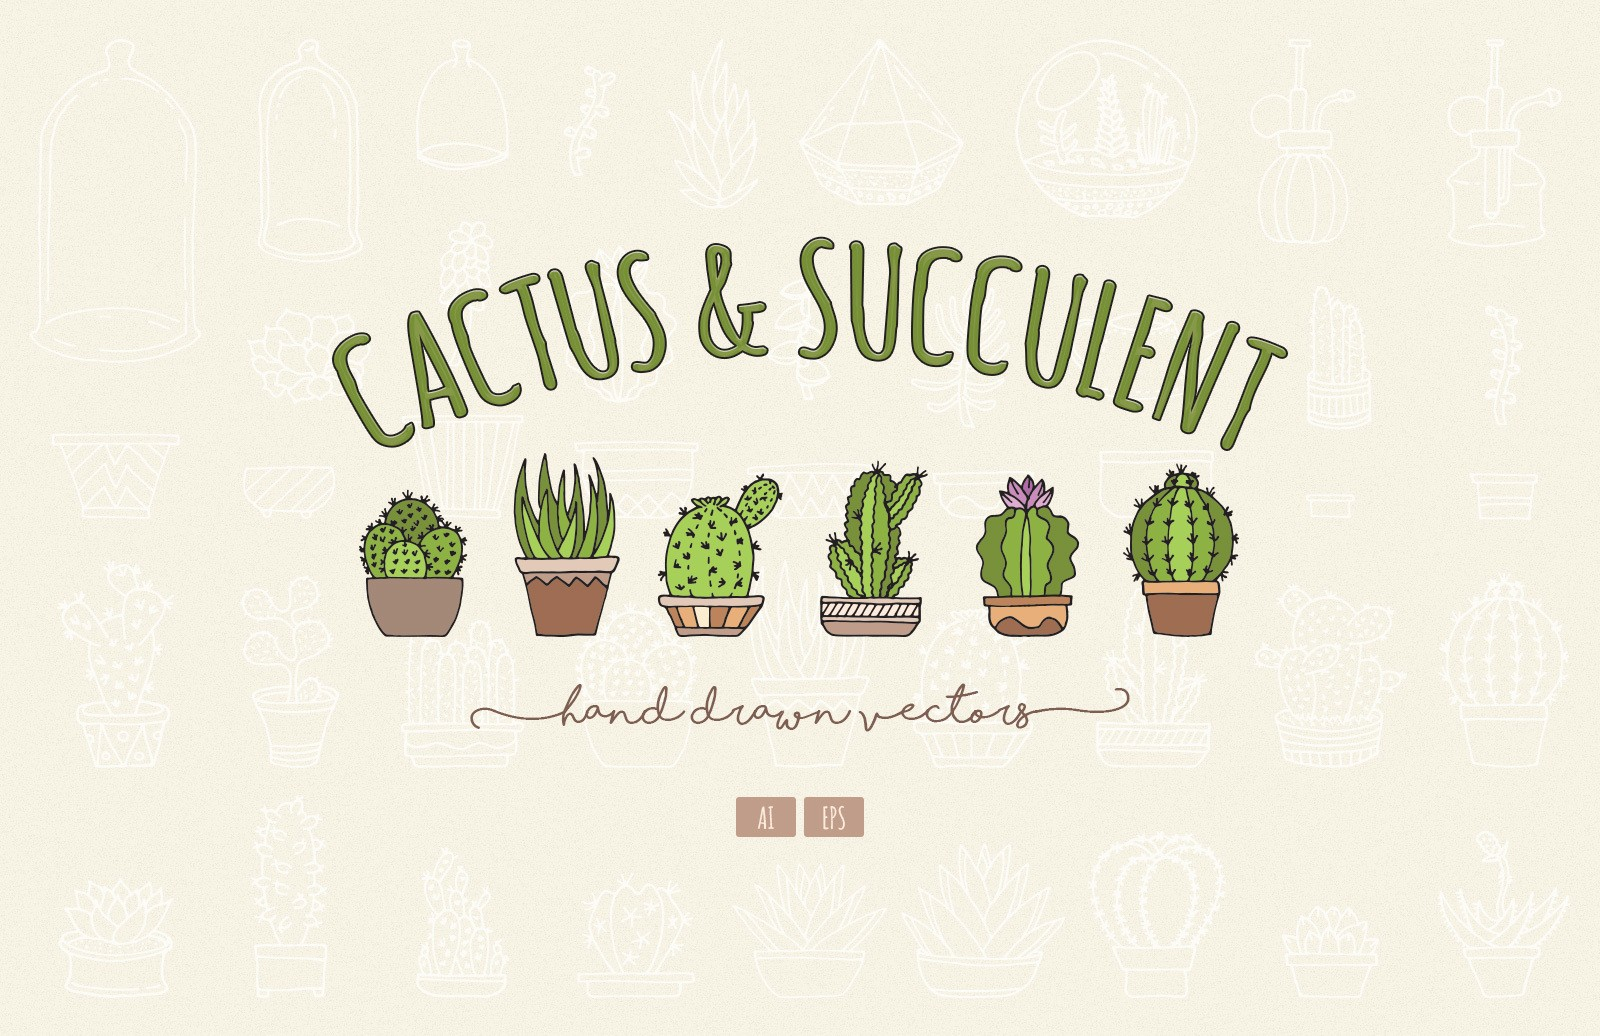 Hand Drawn Cactus & Succulent Vectors